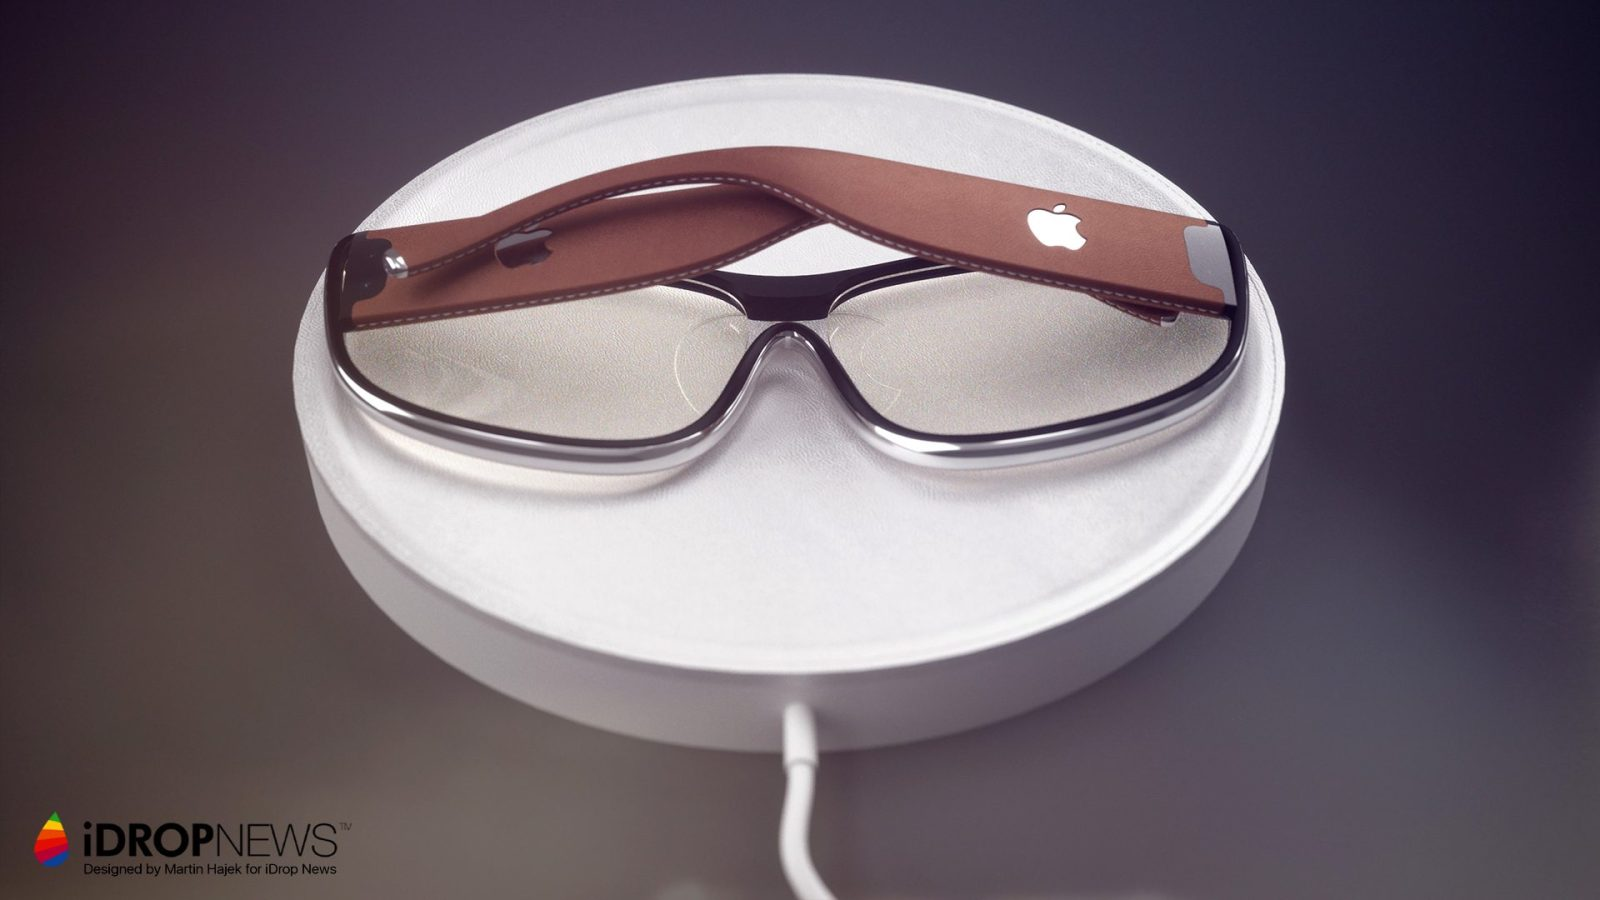 Apple acquires startup focused on making 'vibrant' lenses for augmented reality glasses